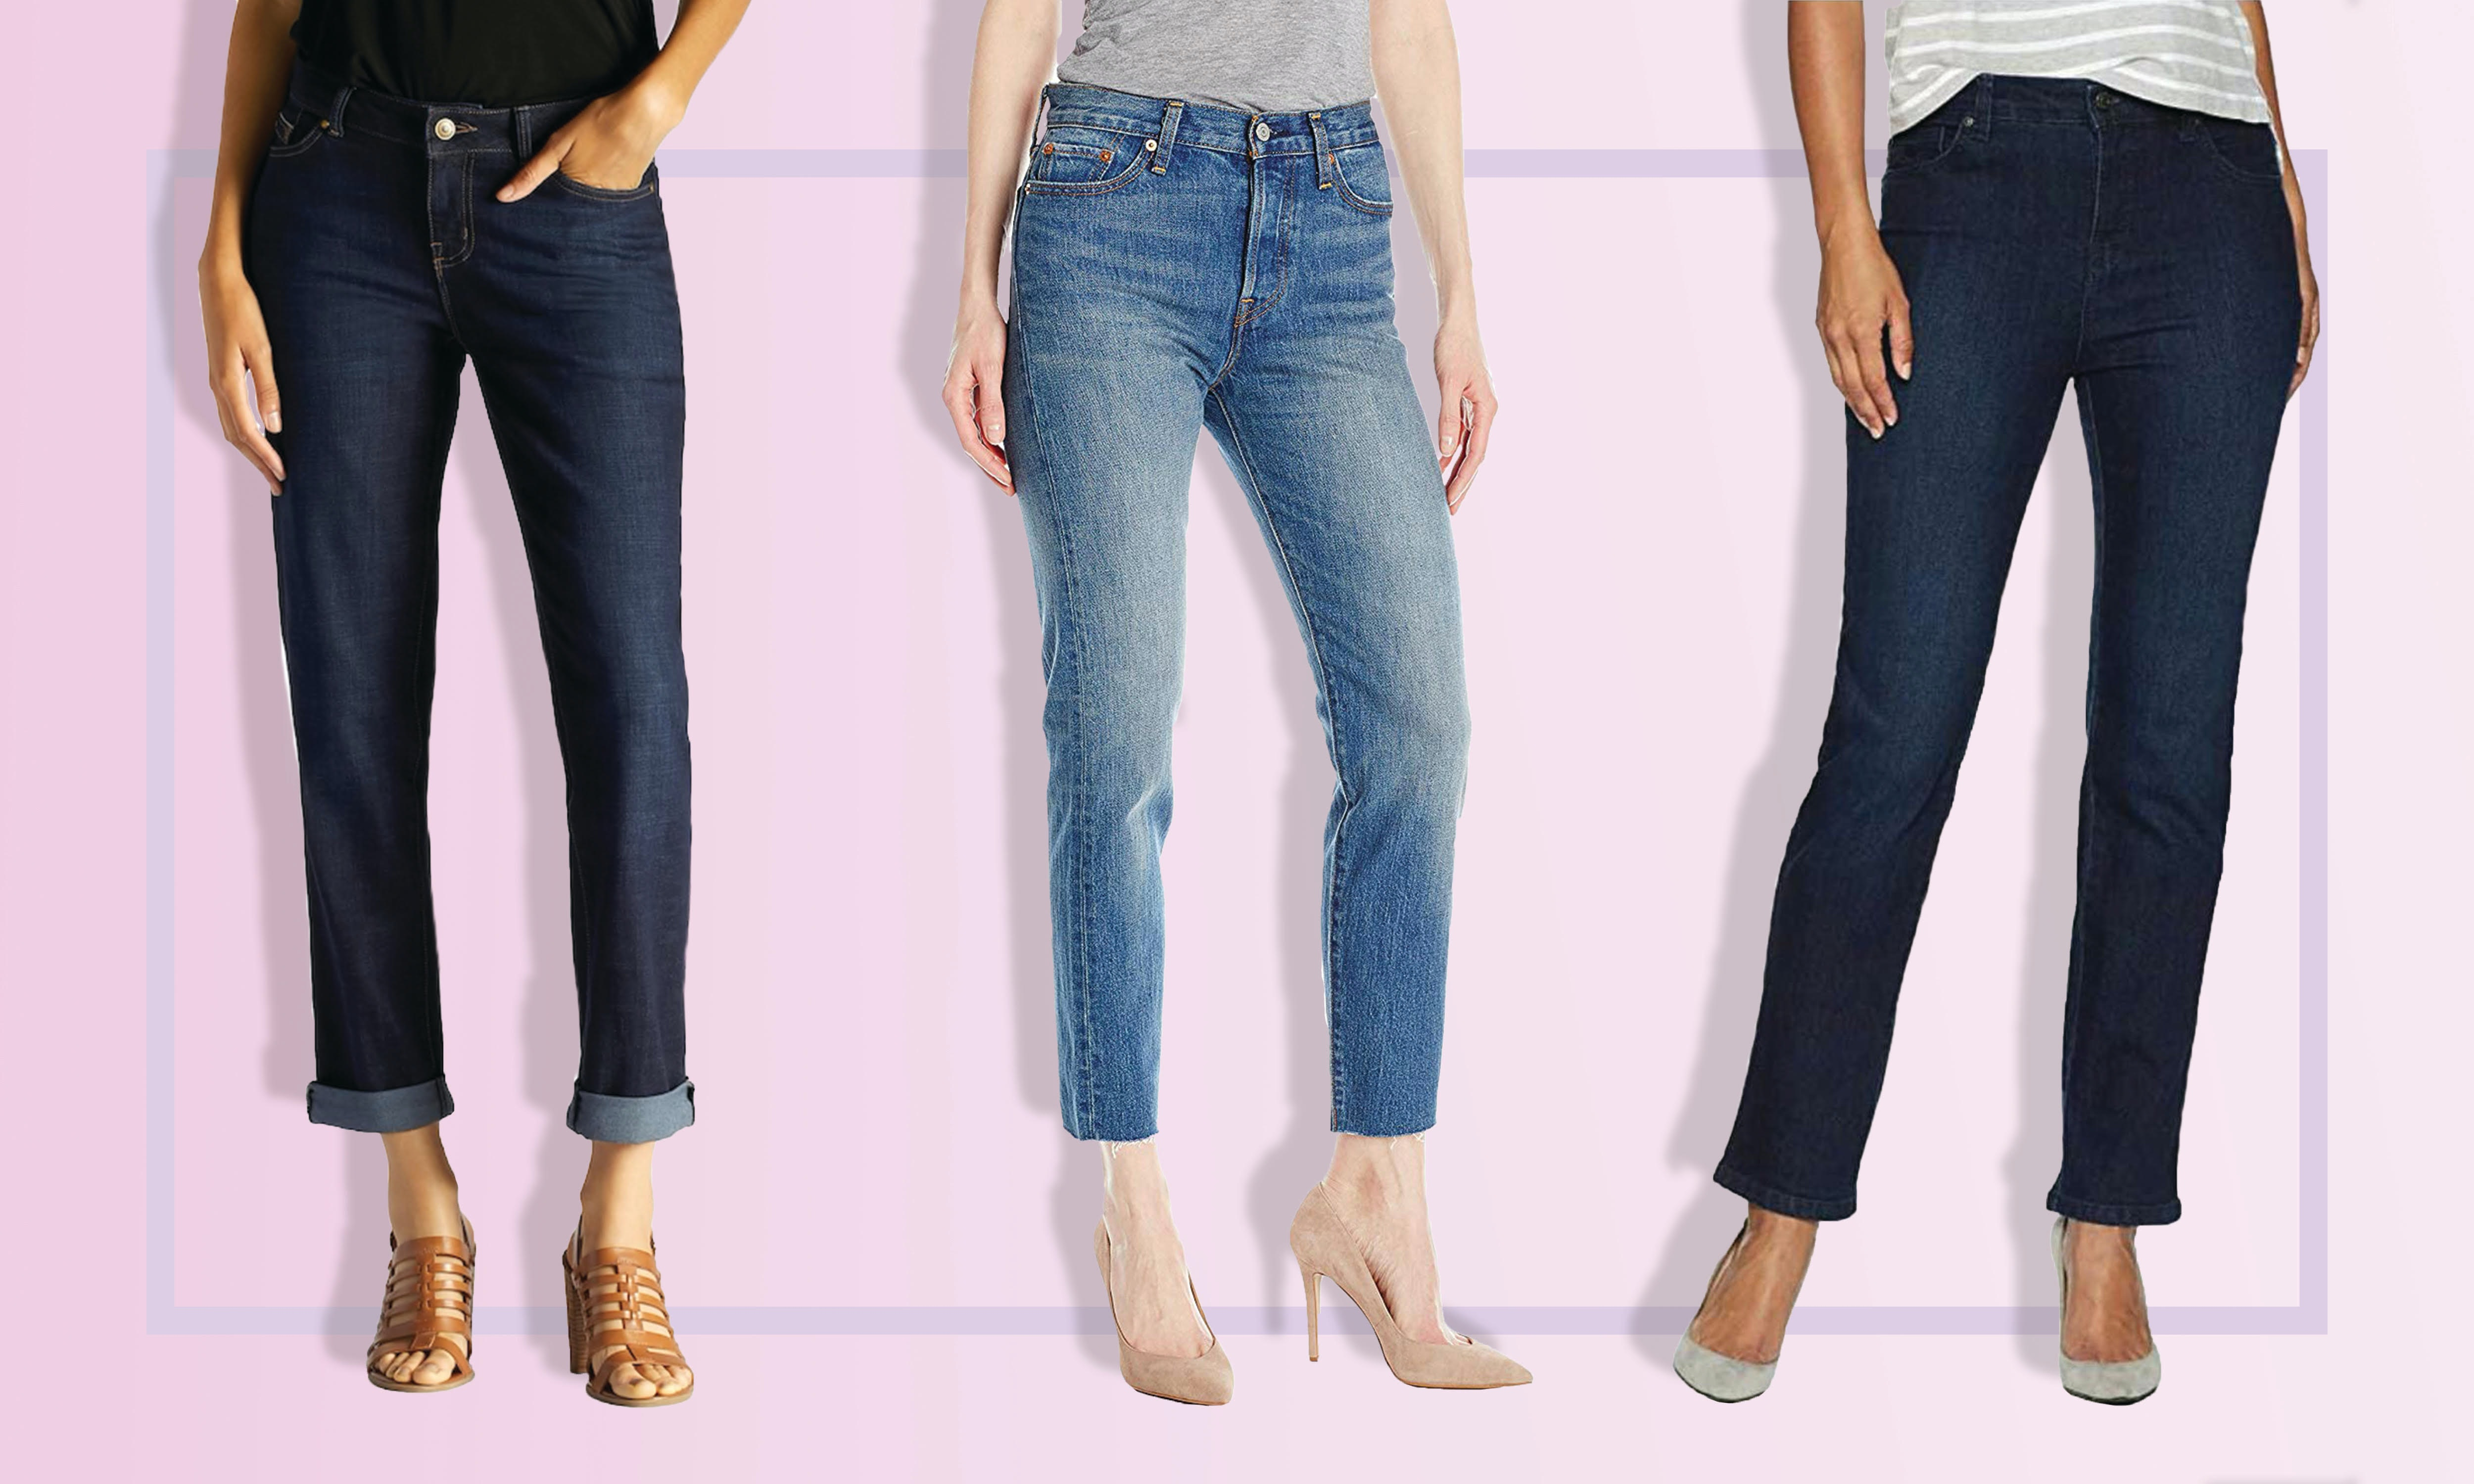 The 6 Best Jeans For Women With Big Thighs